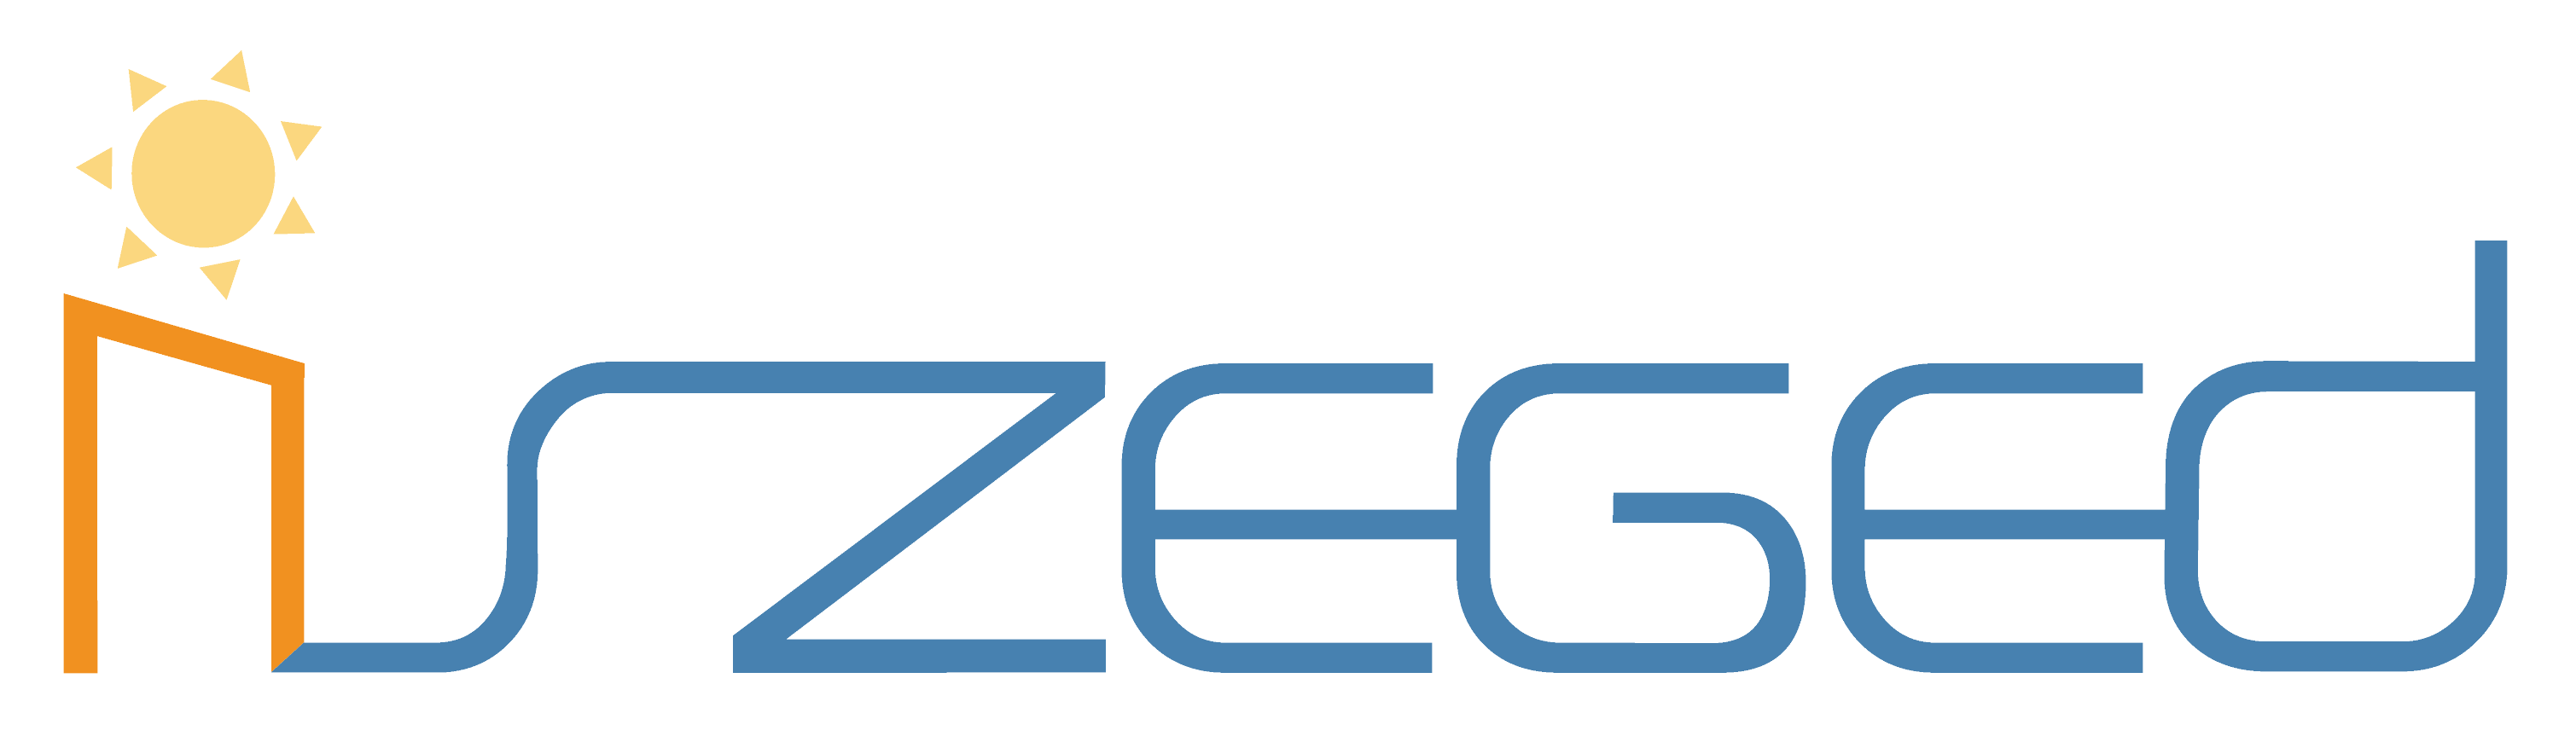 Iszeged logo5